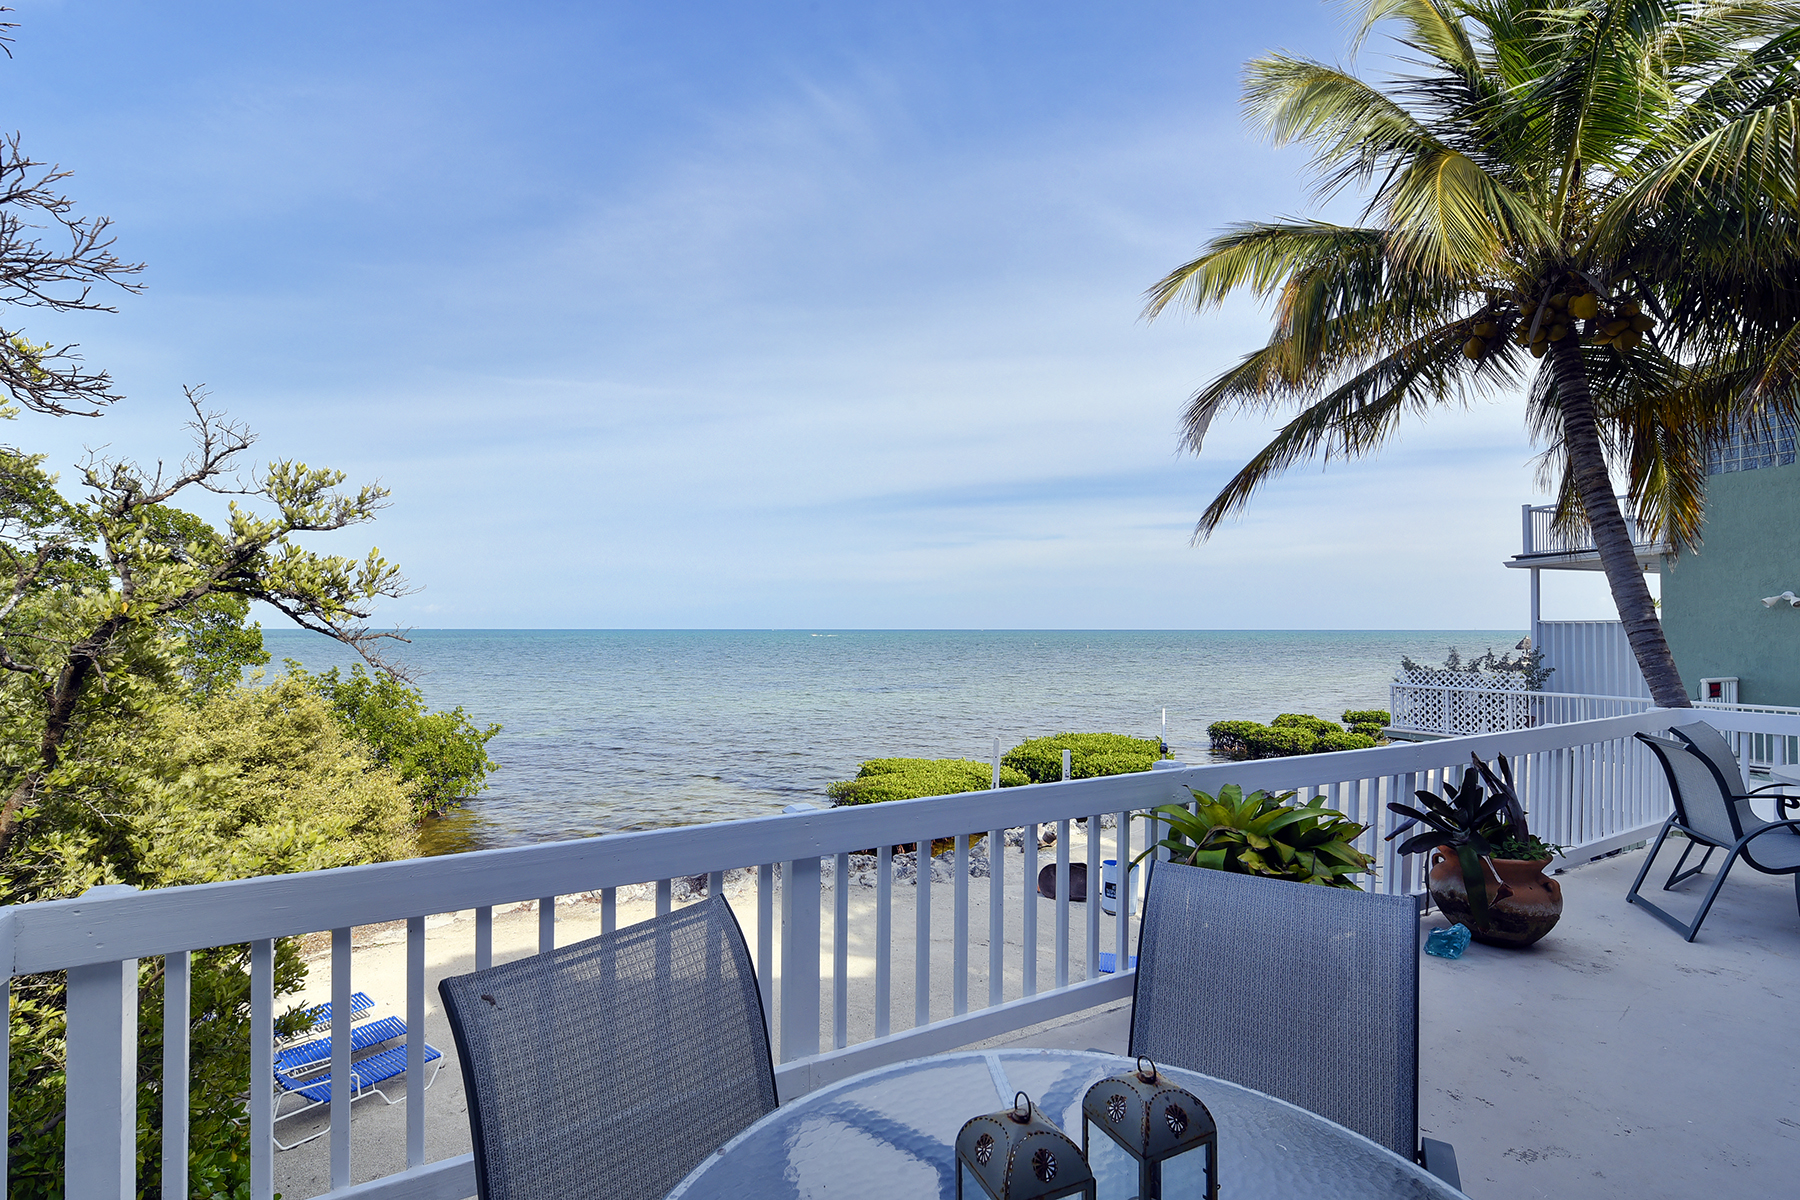 Single Family Home for Sale at Sweeping Ocean Views 316 North Drive Plantation Key, Florida, 33036 United States